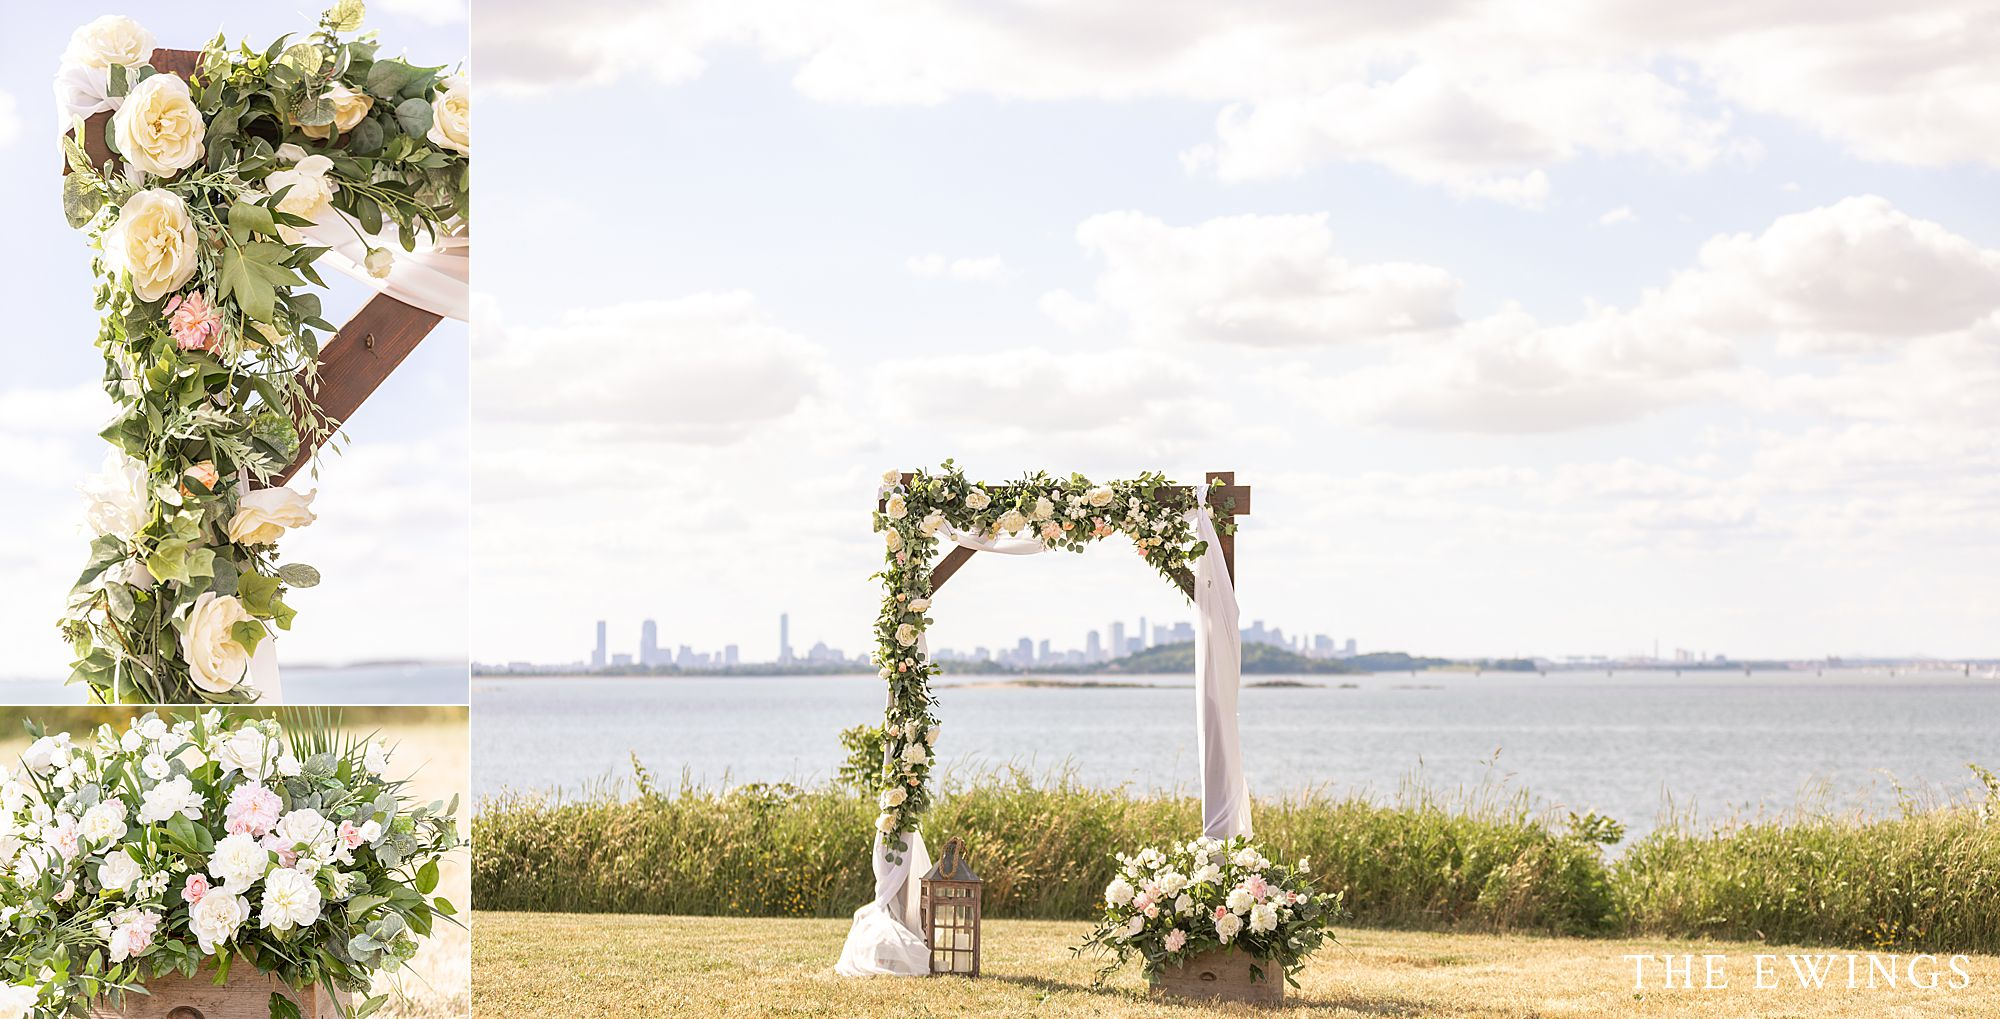 Wedding floral arch with the Boston skyline in the background, set up for an intimate micro wedding on a Boston Harbor Island.